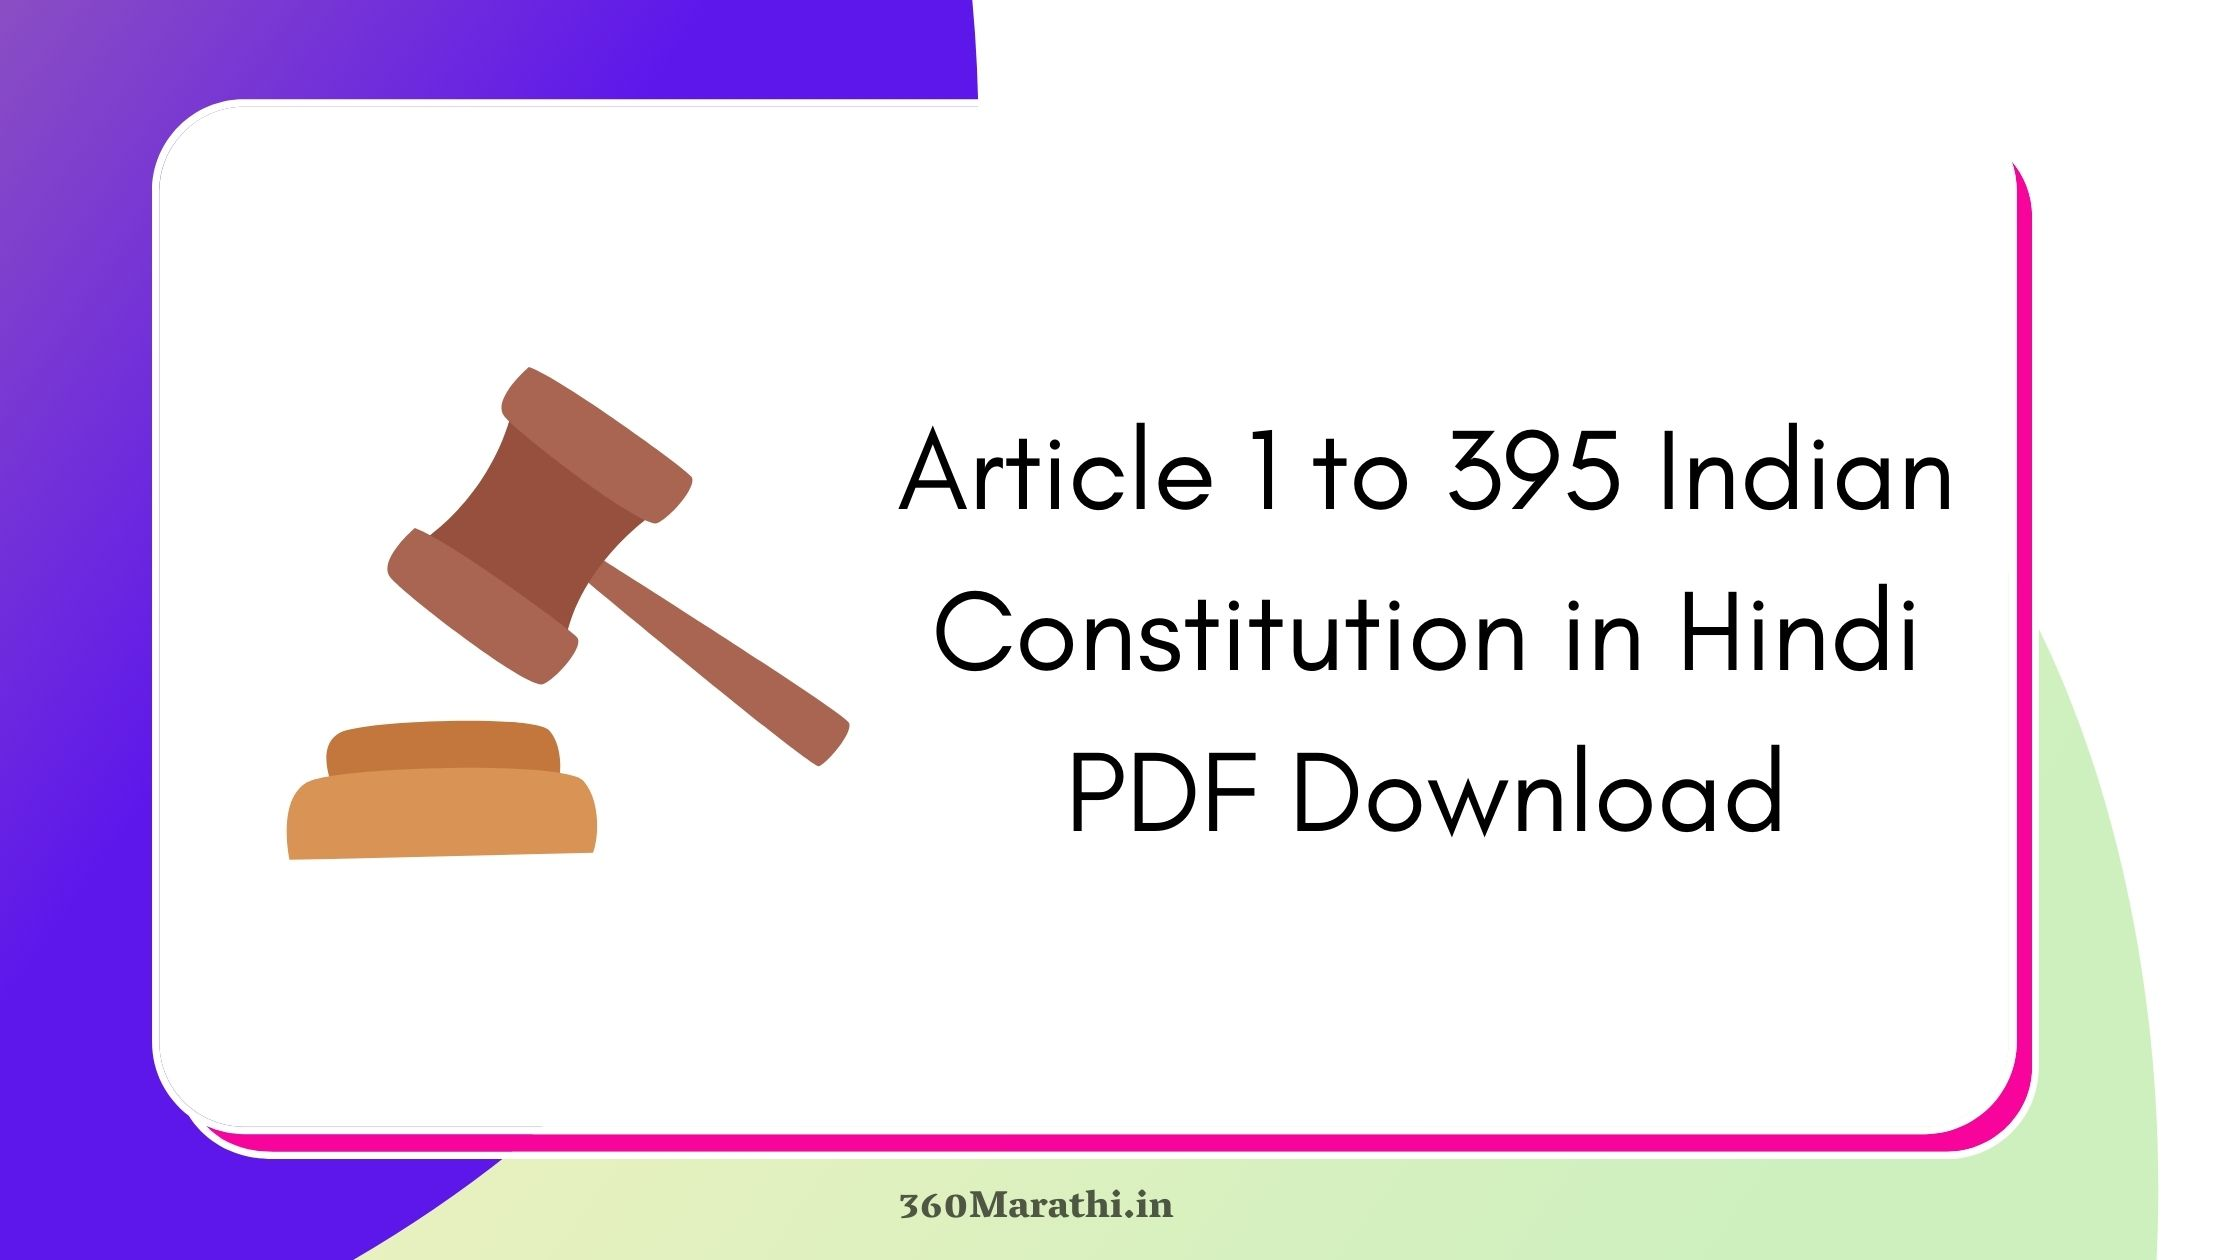 Article 1 to 395 Indian Constitution in Hindi PDF Download   सम्पूर्ण भारतीय संविधान PDF Download